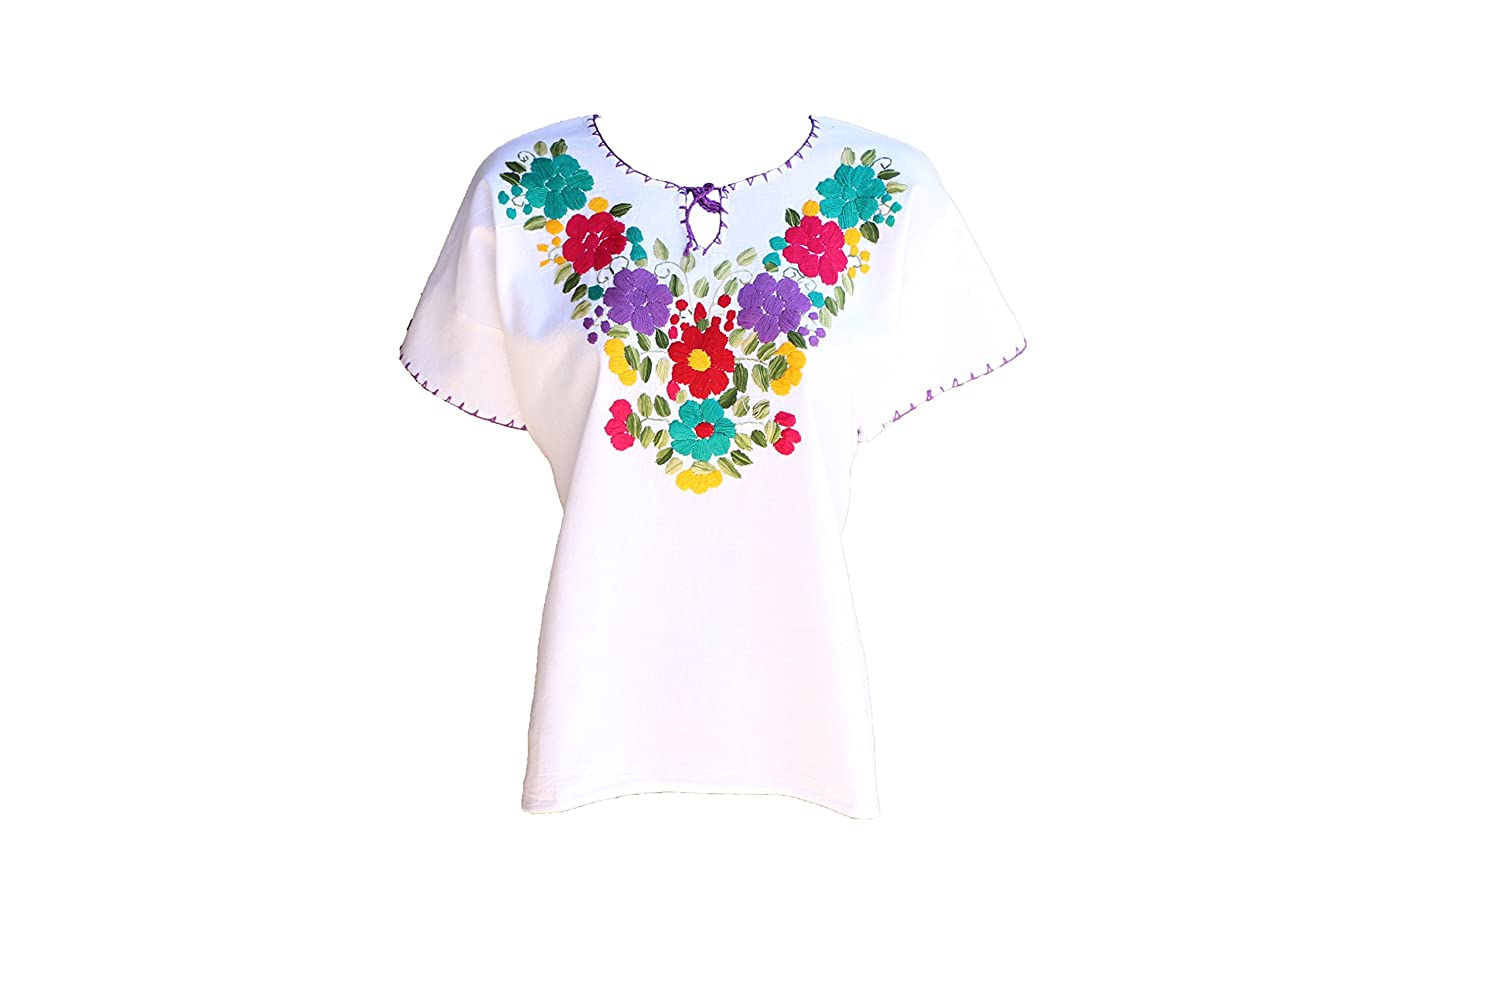 8bd49a66fb50 HIGH-QUALITY – TABIK brand of traditional Mexican blouse is made of a  high-quality material of 100% Cotton for lightweight, breathable, ergonomic  and ...